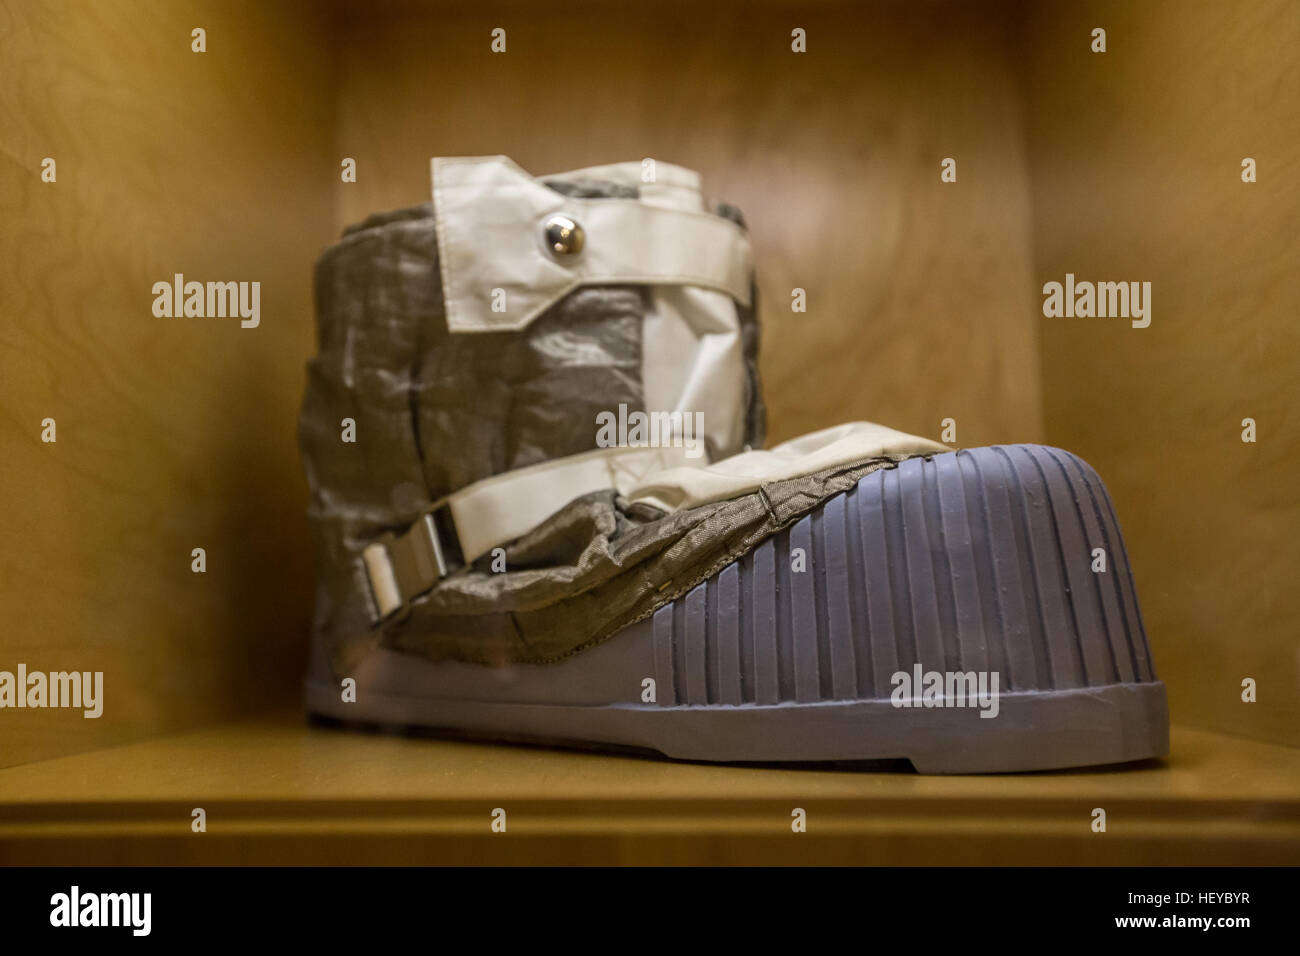 space boot from the apollo spce program was made for astronaut jim lovell - Stock Image